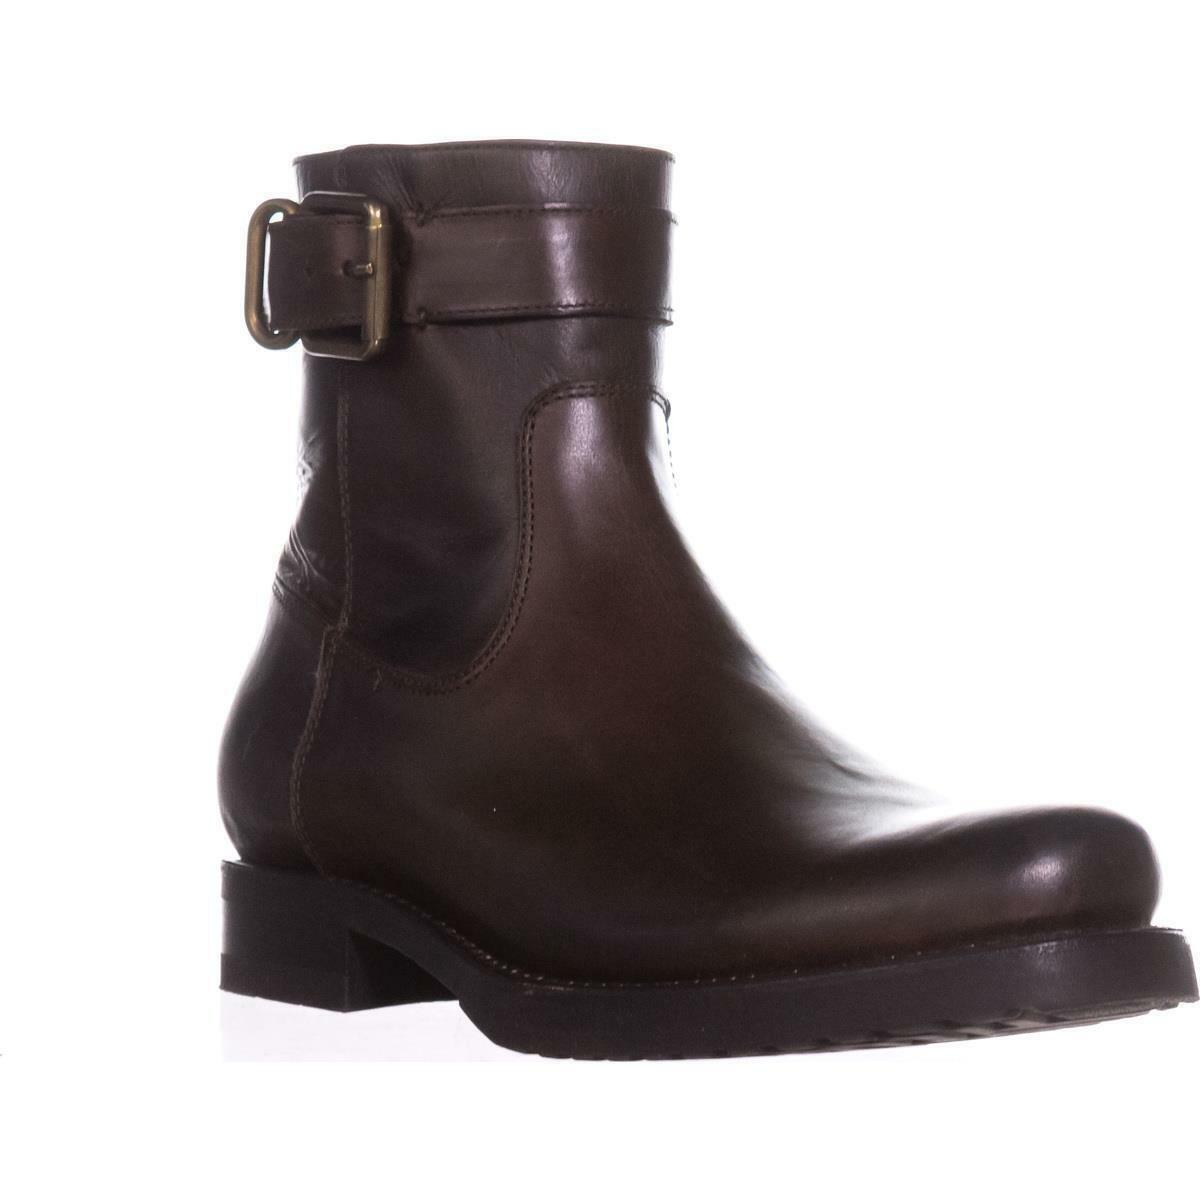 Frye VERONICA Chocolate Strap Zip Short Ankle Boots shoes Flats Multi Size NIB